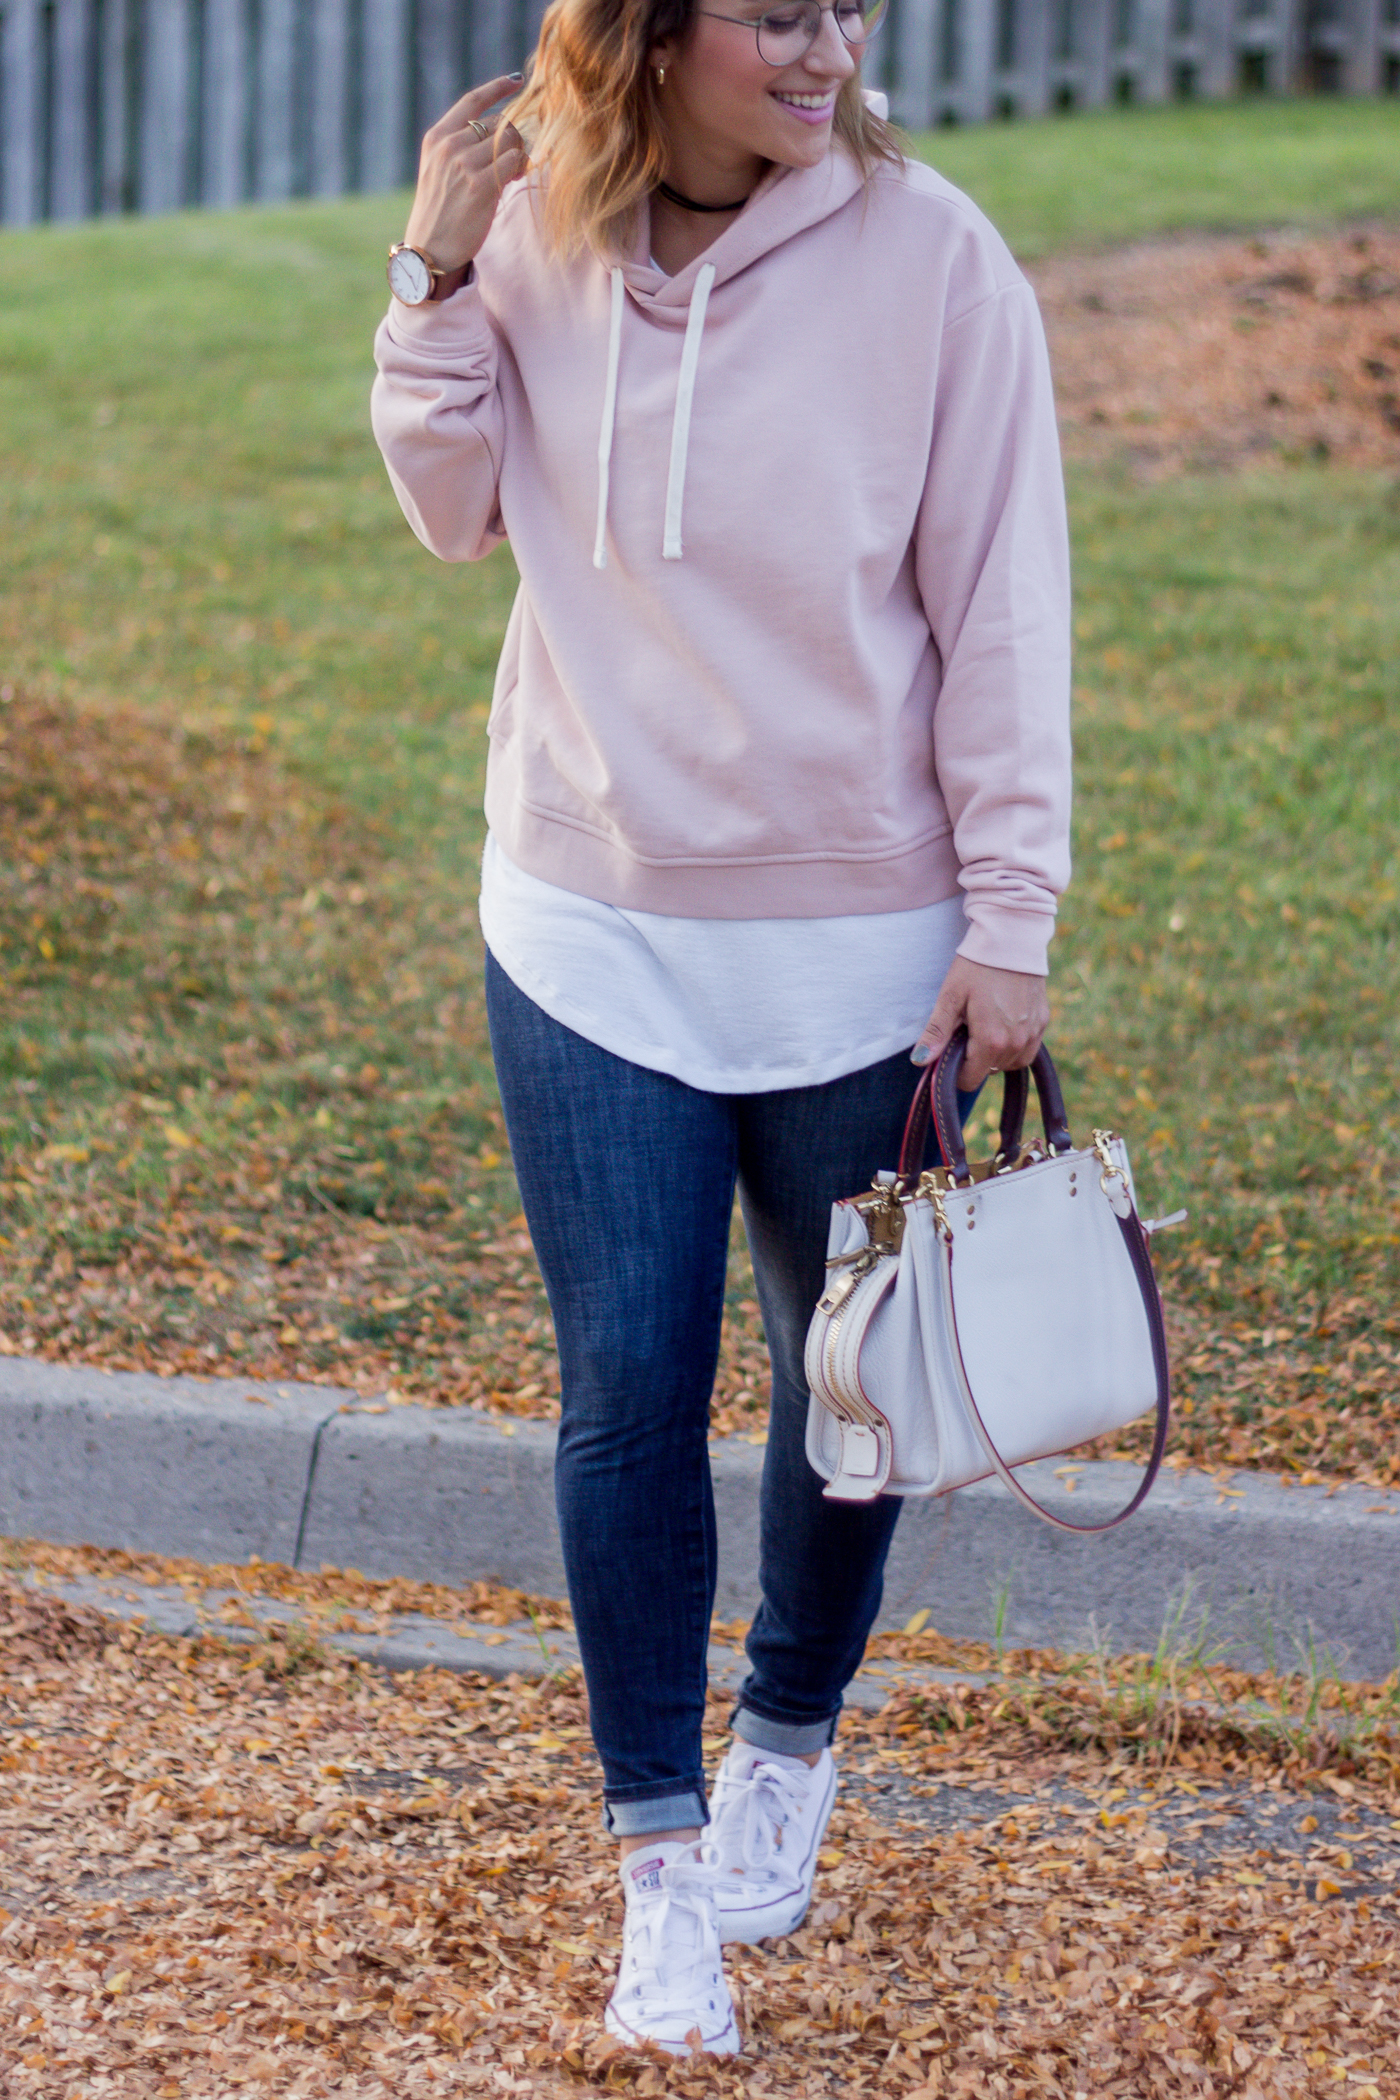 Canadian petite fashion blogger shares her favourite fall hoodies and how she wears this pullover from Everlane